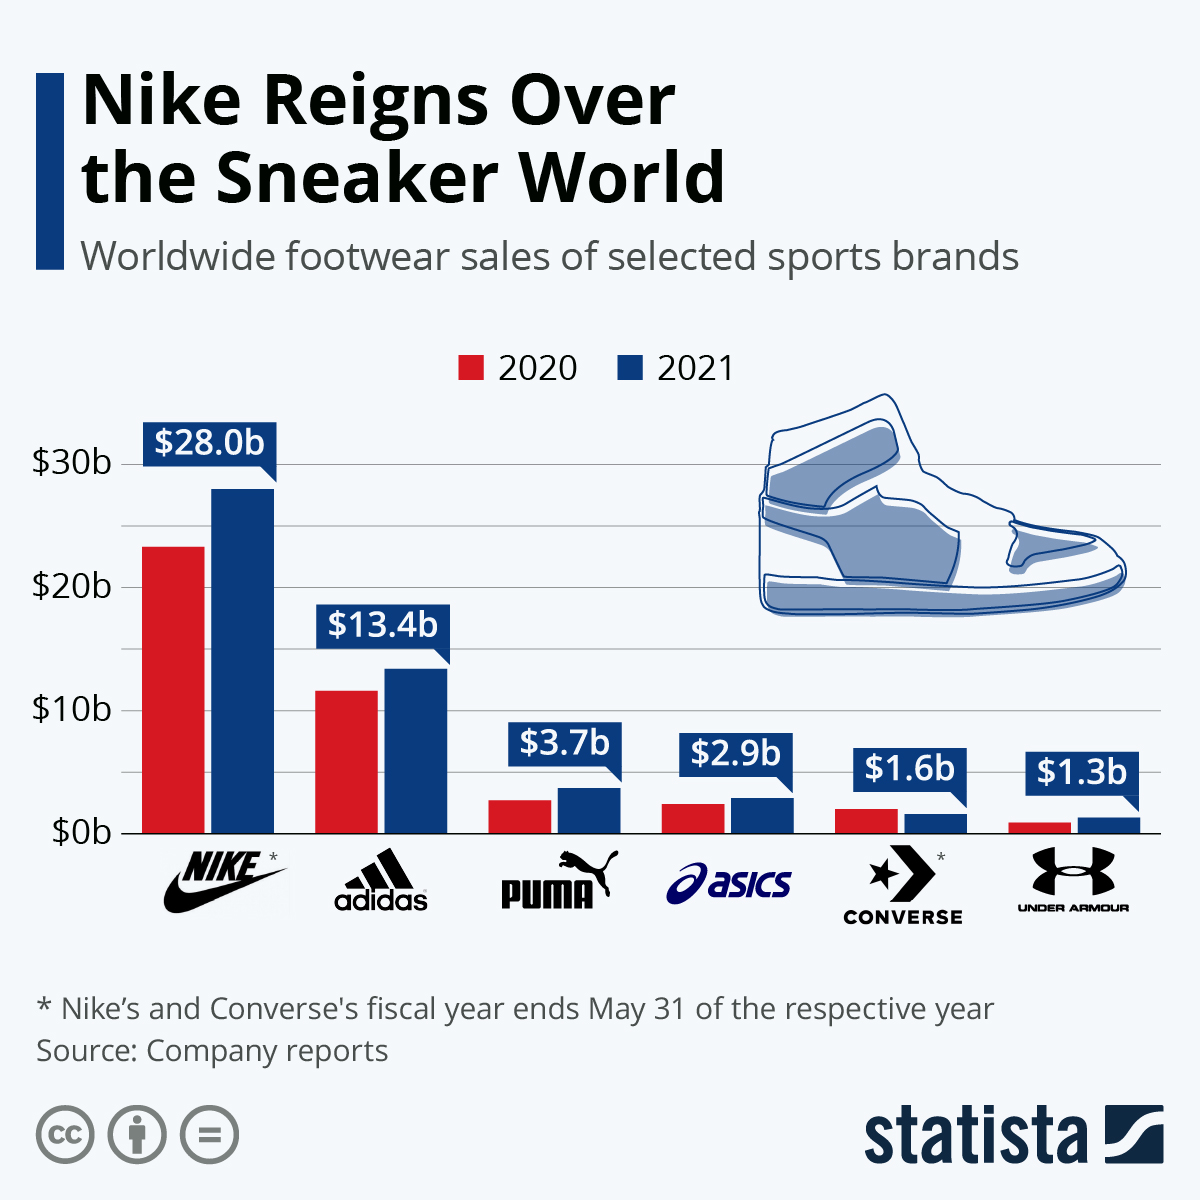 motor Esquivar Brutal  Global Marketing Strategy Of Nike [1971-2020] Success Story